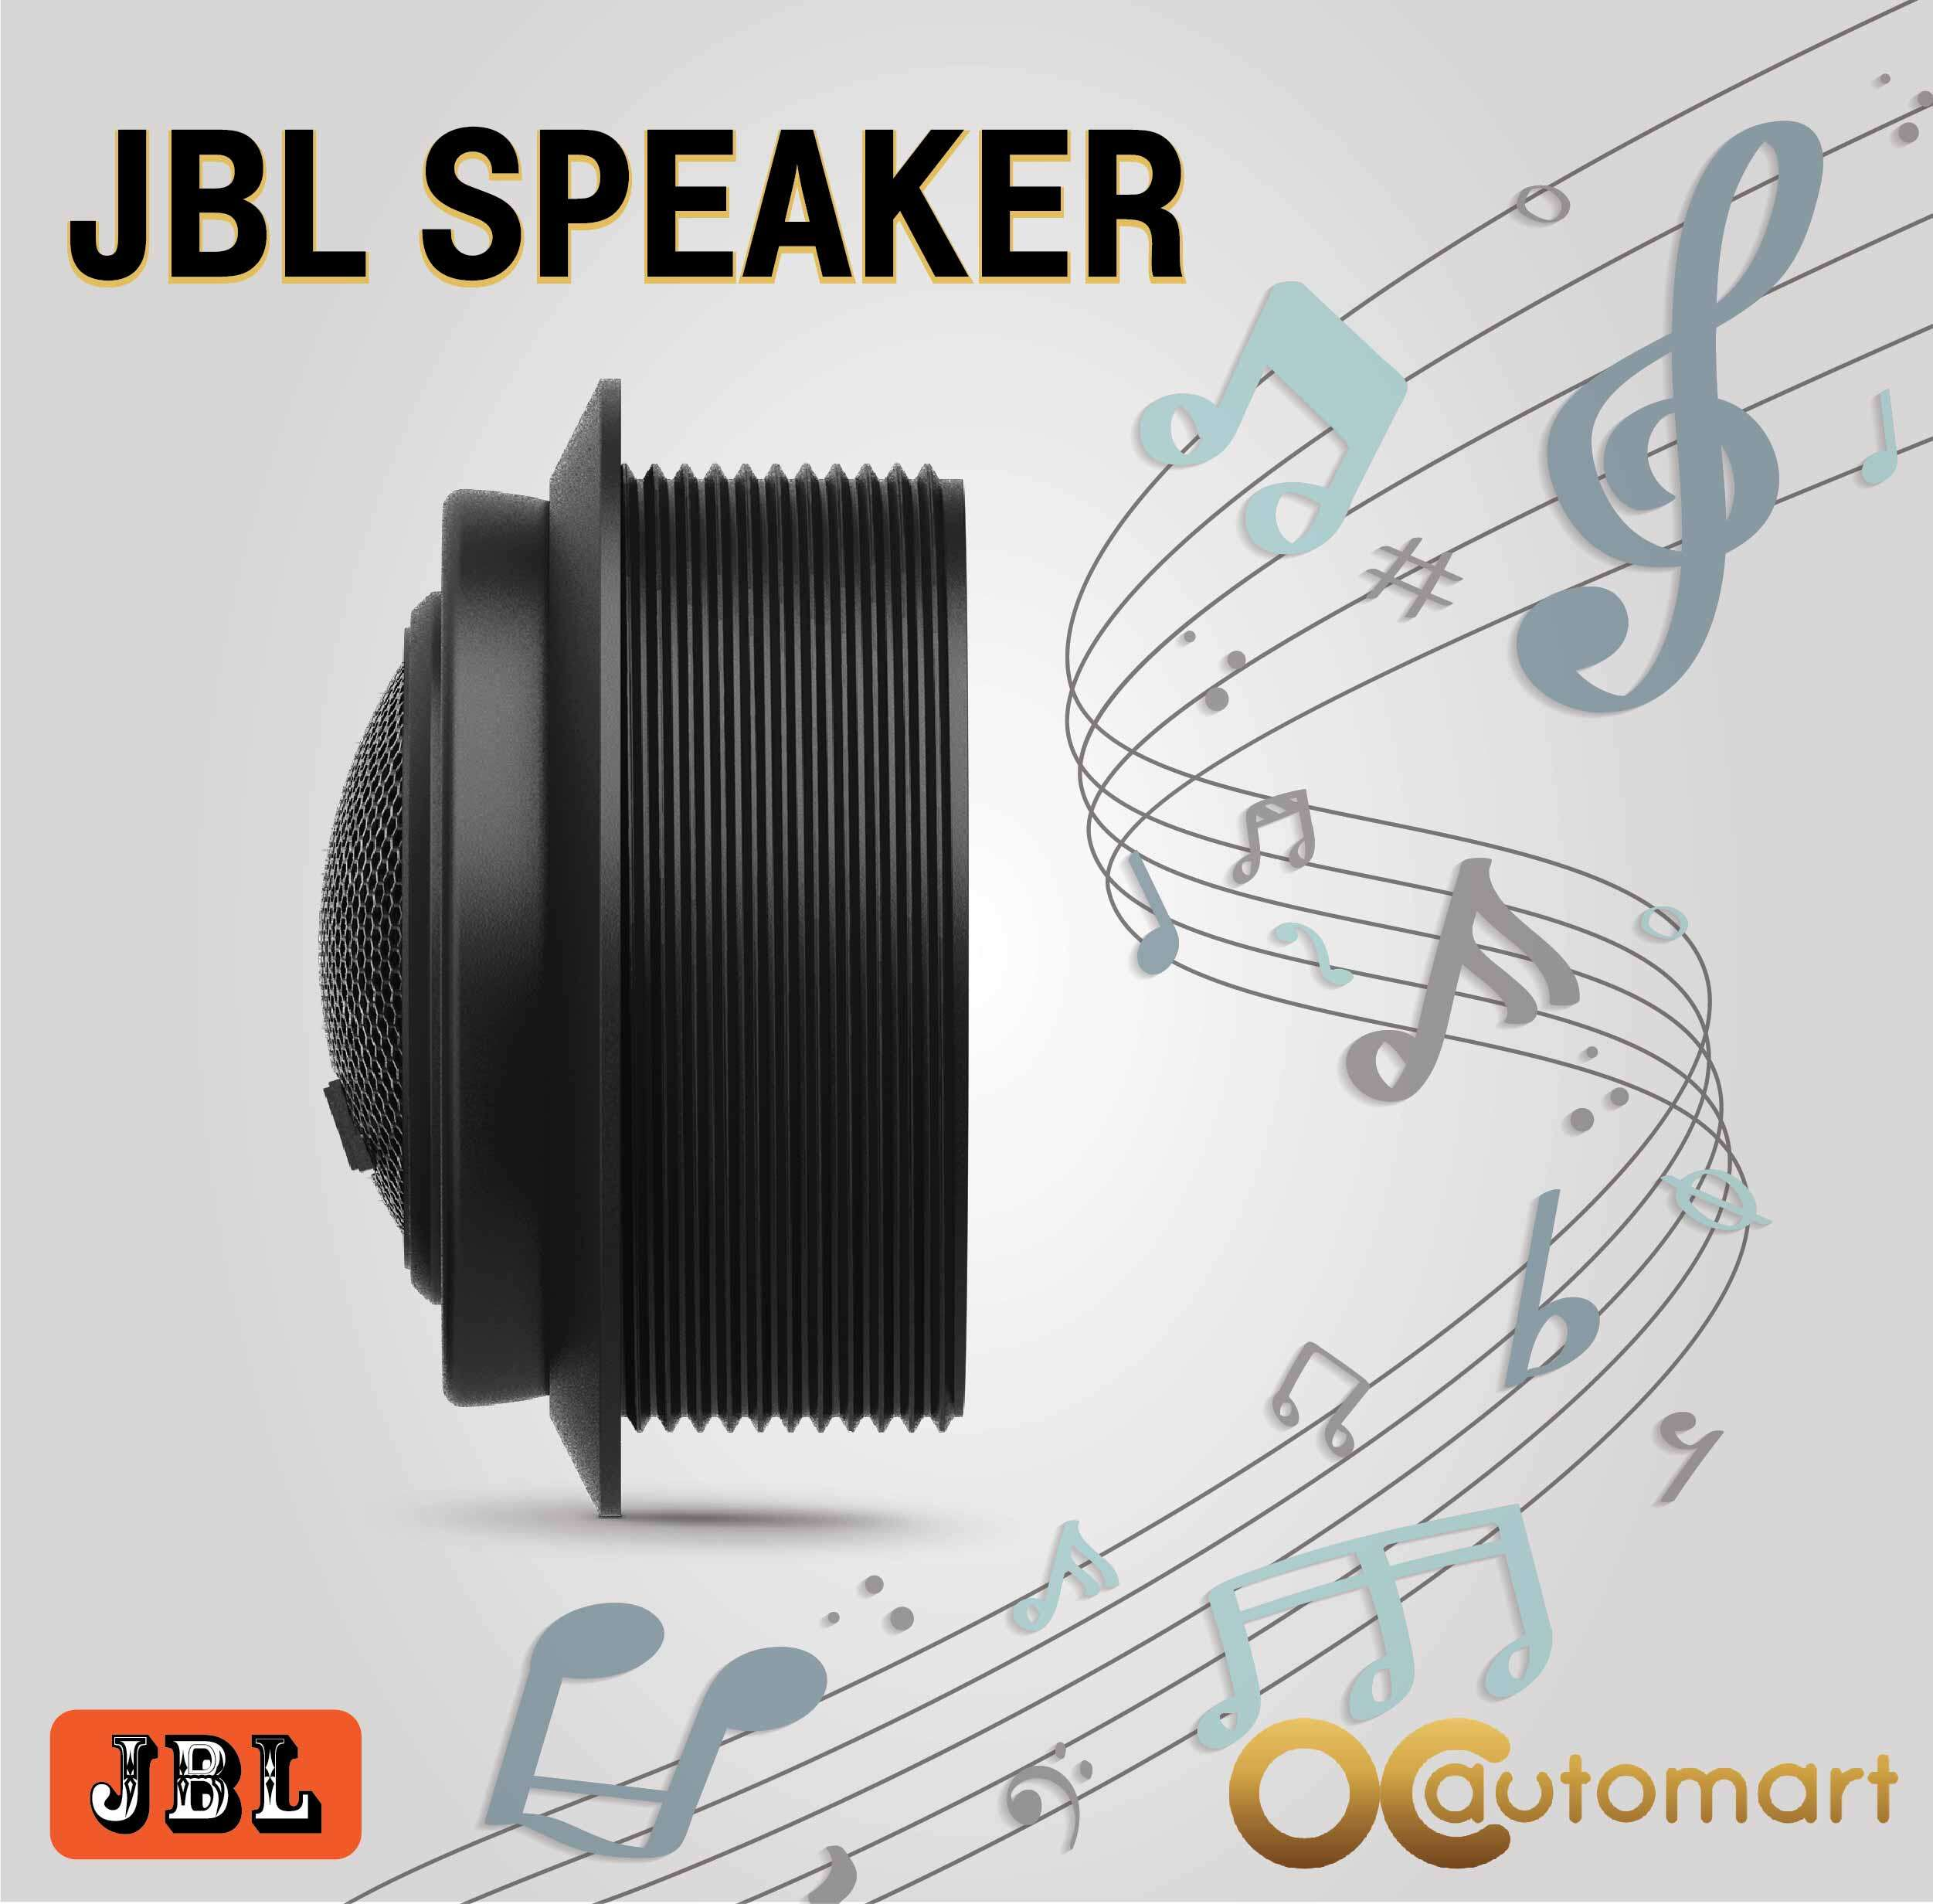 JBL STADIUM GTO 750T - Stadium GTO750T 3/4 (19mm) tweeter with in-line HIGH-PASS FILTER in enclosure